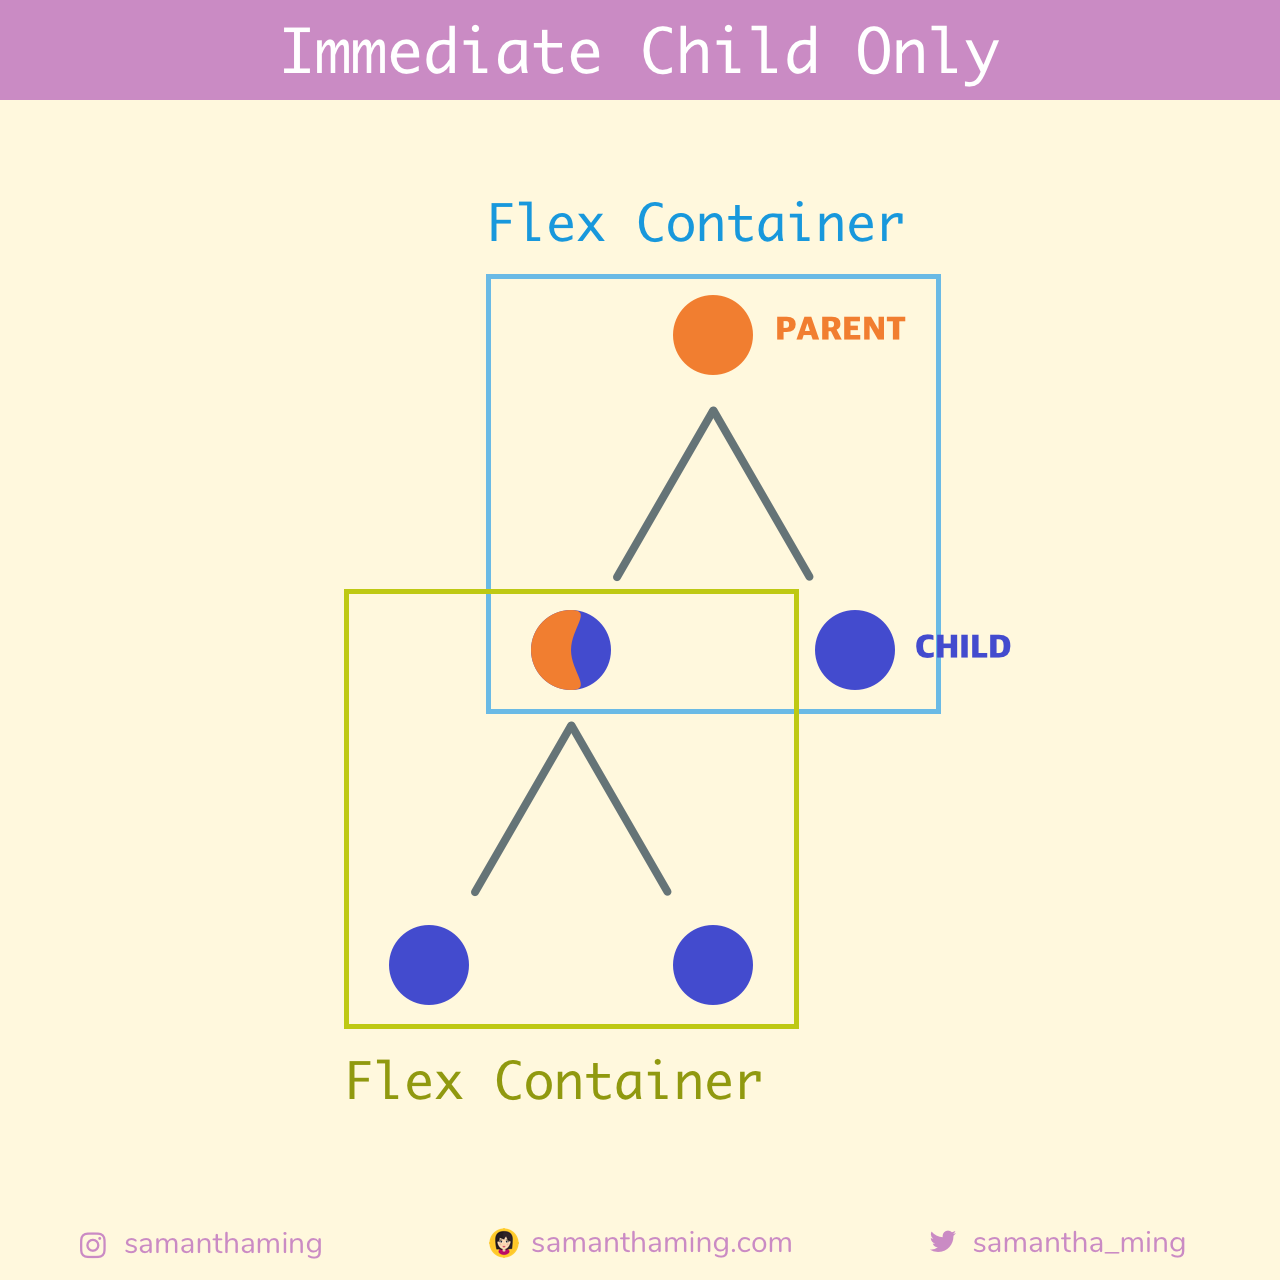 Immediate Child Only